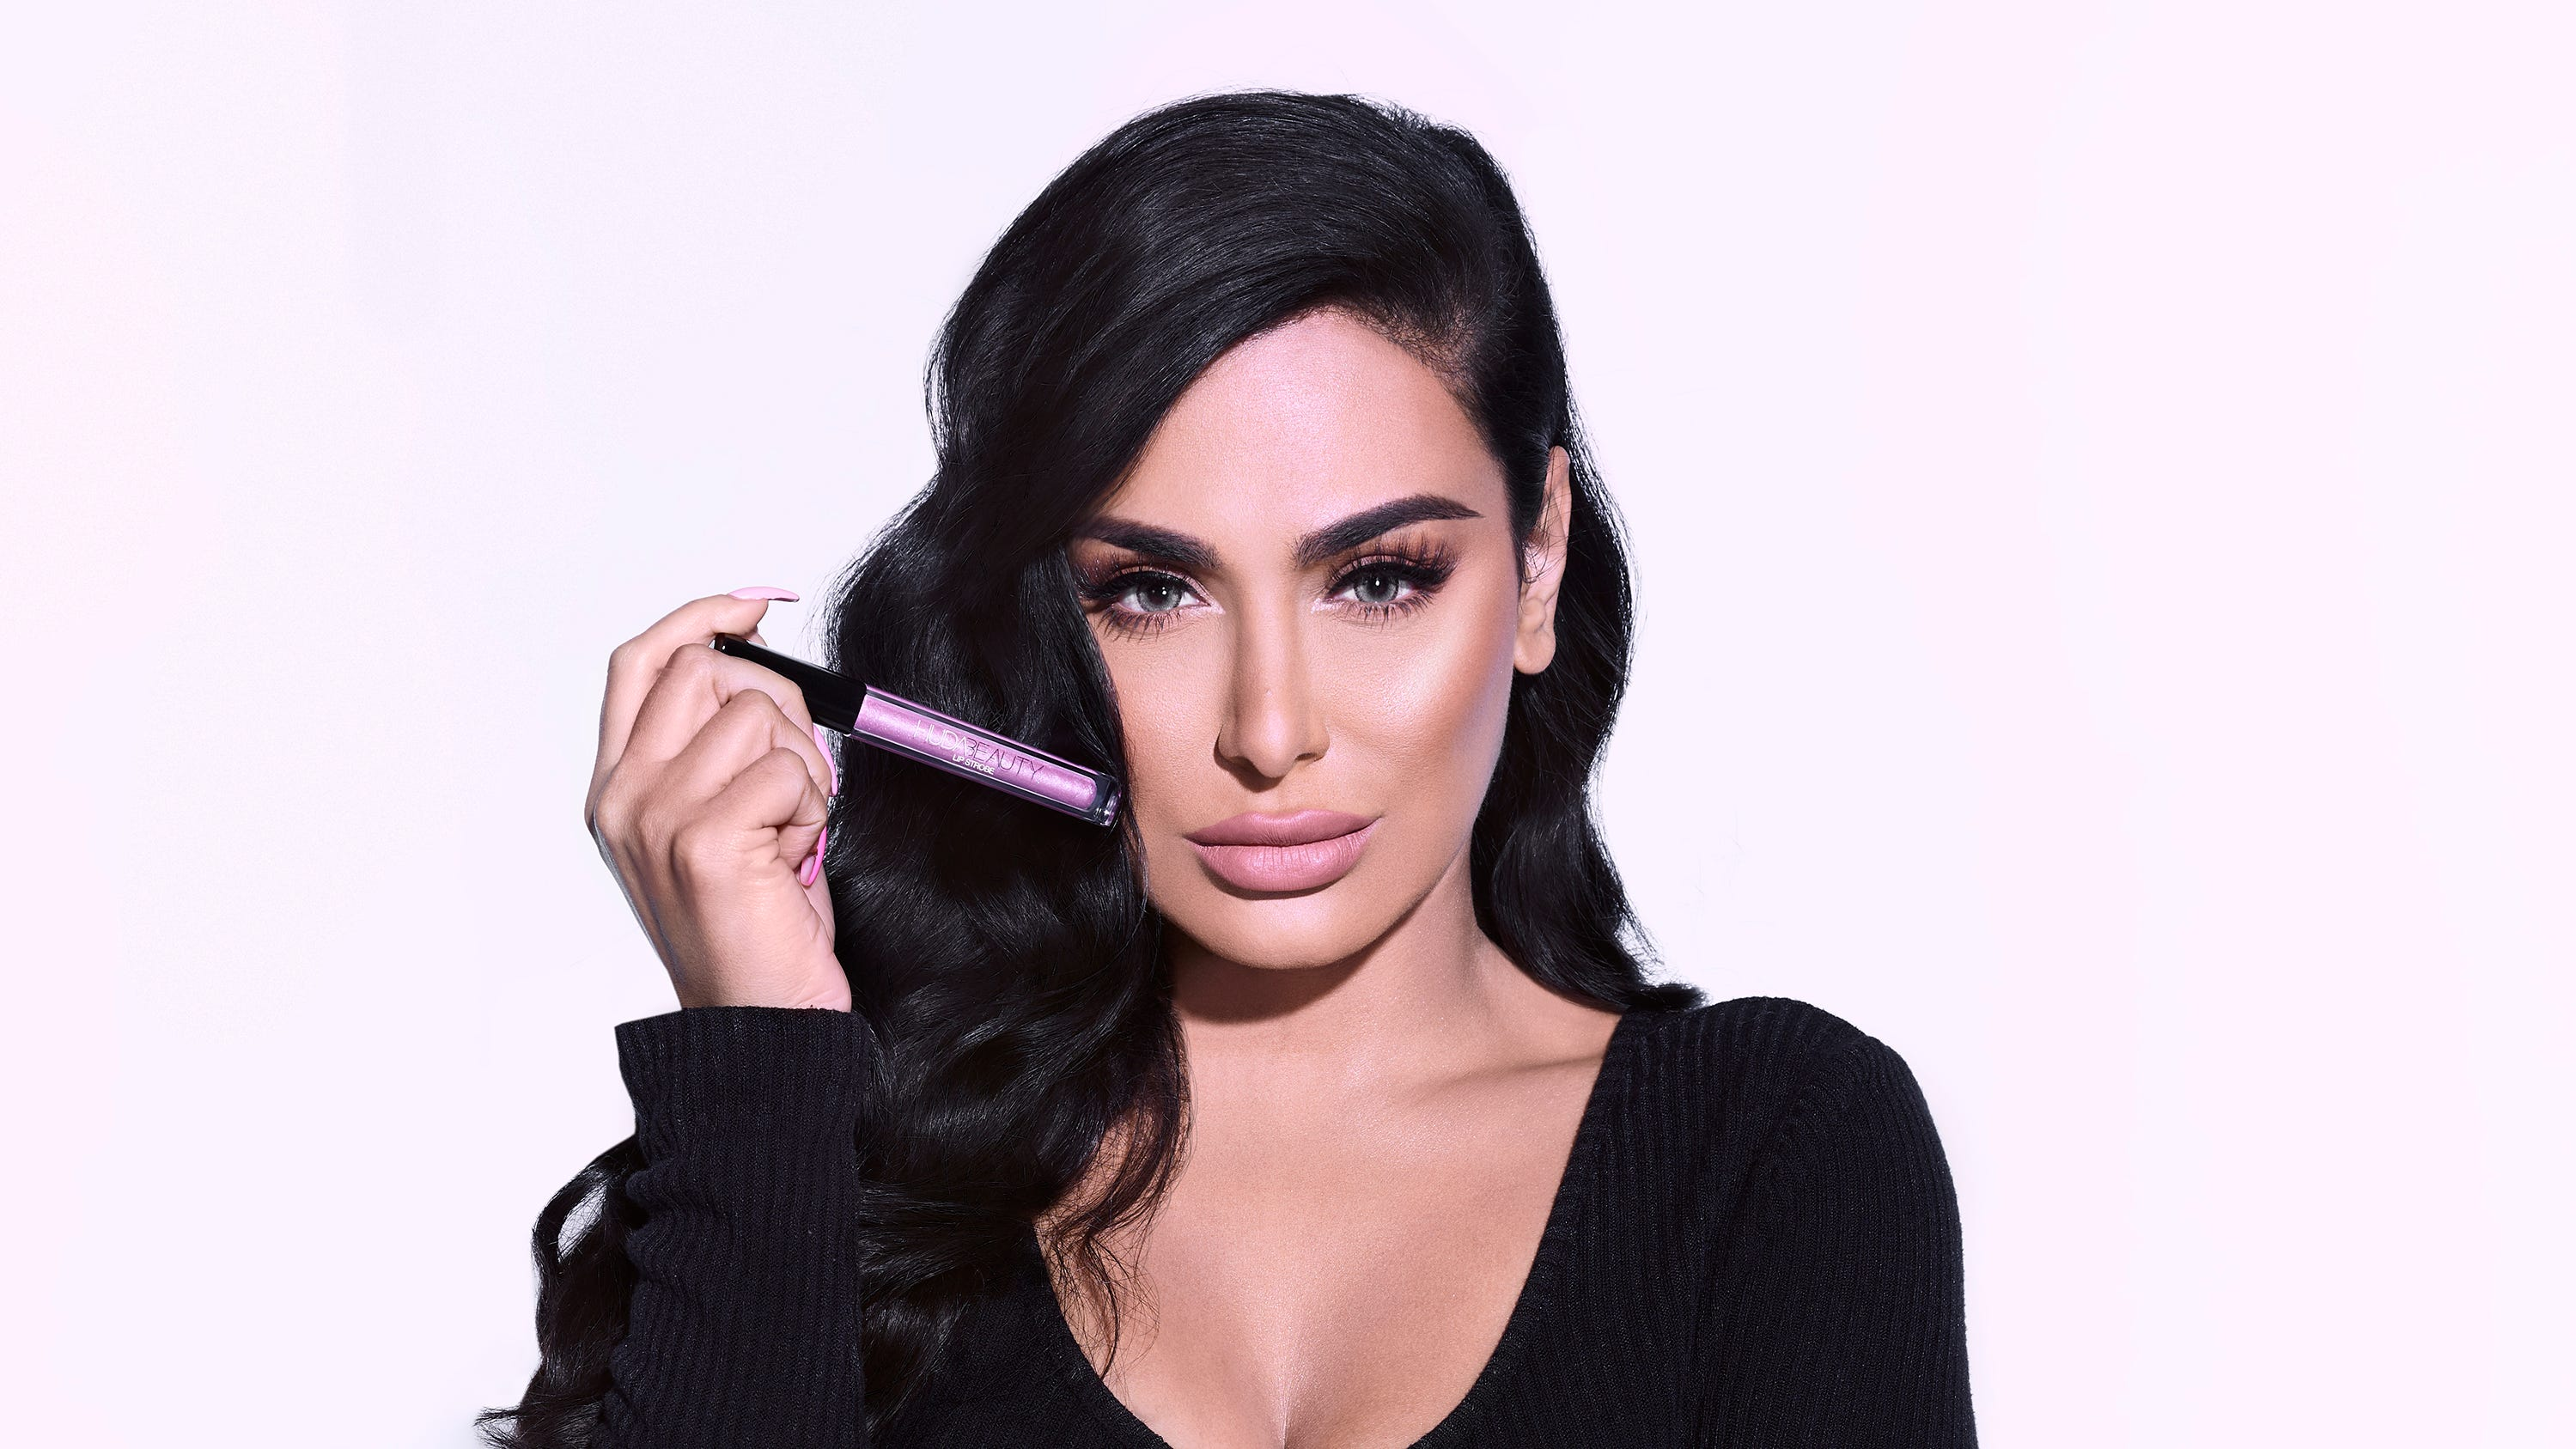 Makeup artist and founder of the billion-dollar brand Huda Beauty Huda Kattan has transformed a beauty blog and YouTube channel into a thriving career and business.